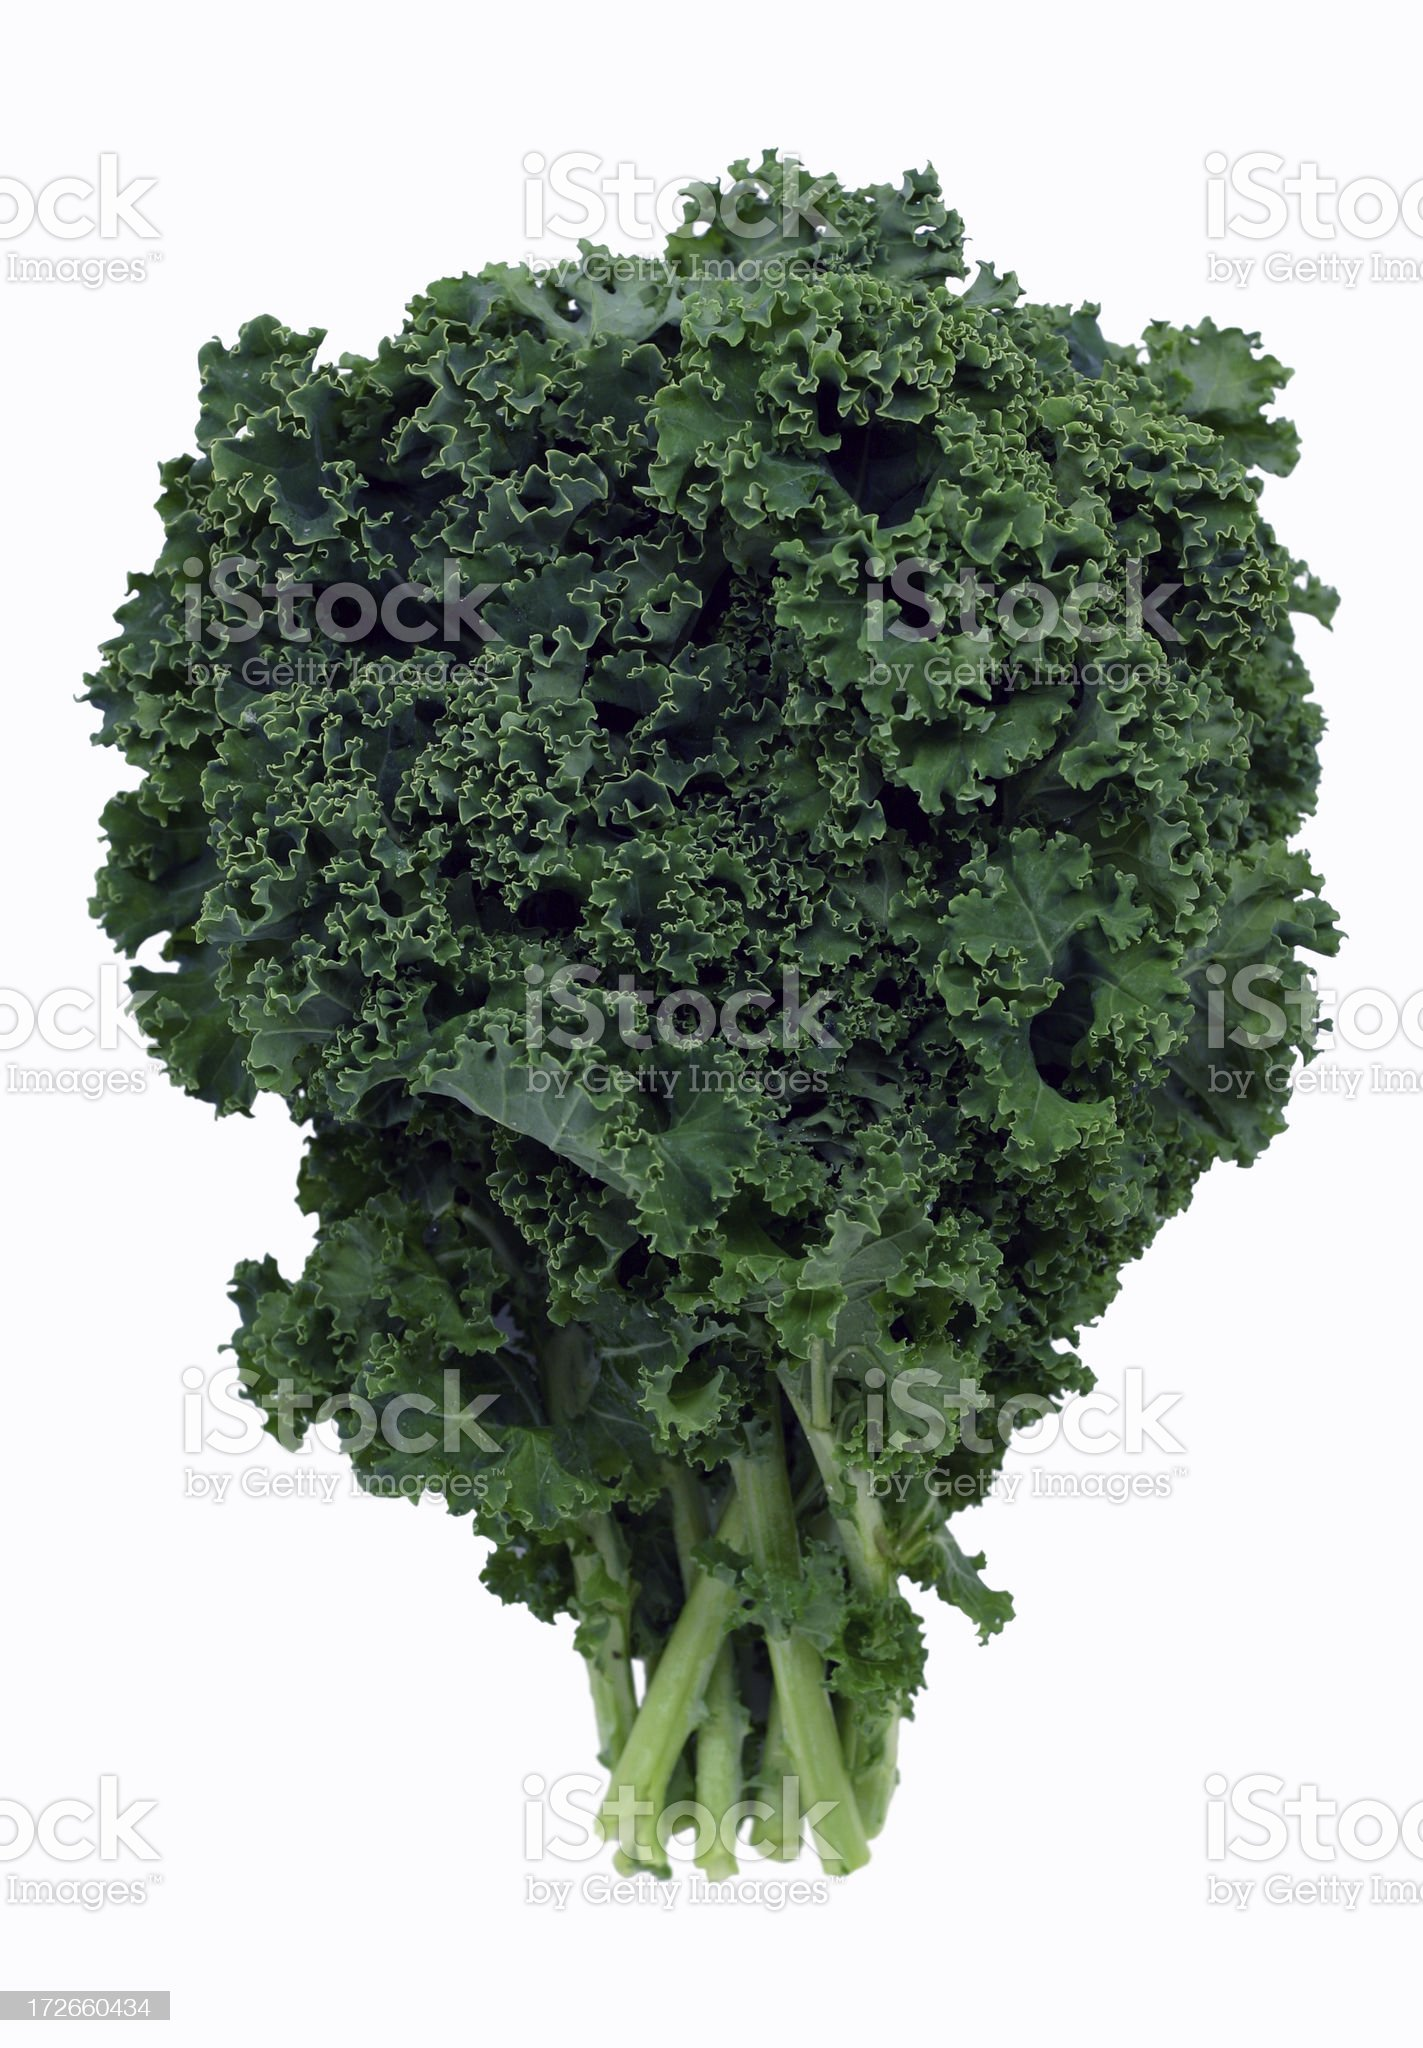 Bushel of green kale on white background royalty-free stock photo